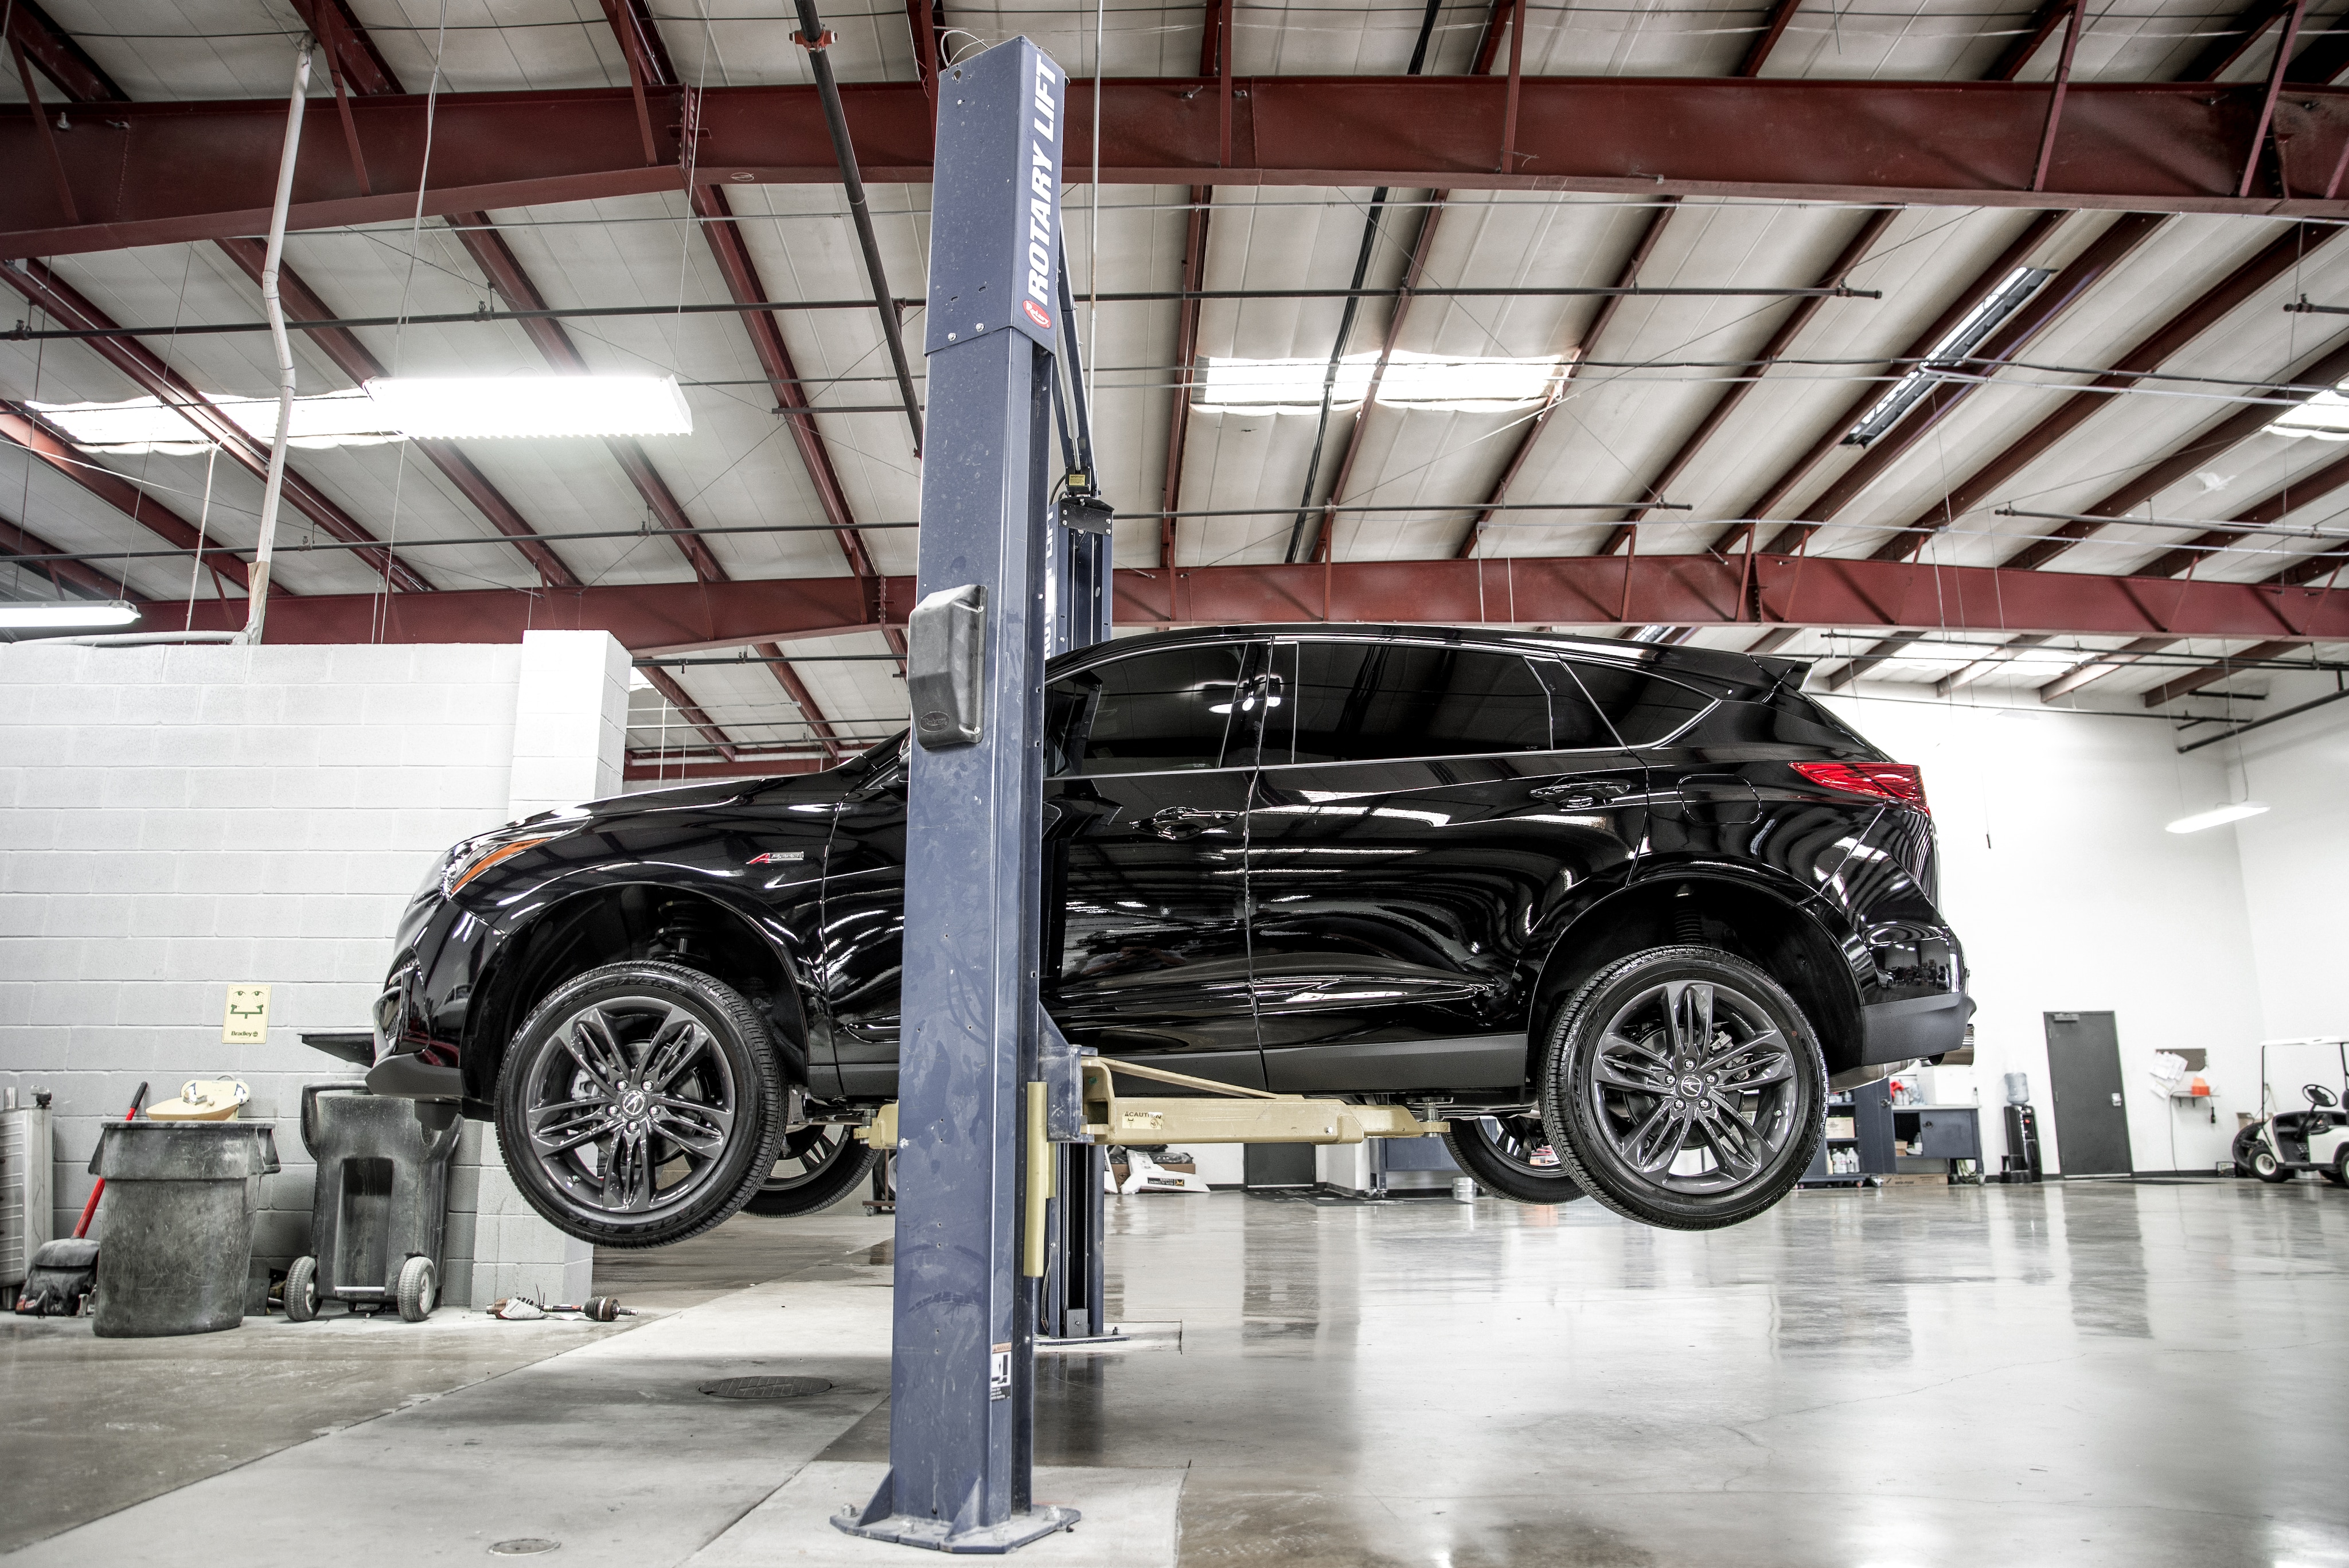 Goodson Acura, In Partnership With Audi Dallas, Operates One Of The Premier Collision  Repair Centers In The Dallas Area. Dallas Collision Center Has Been ...